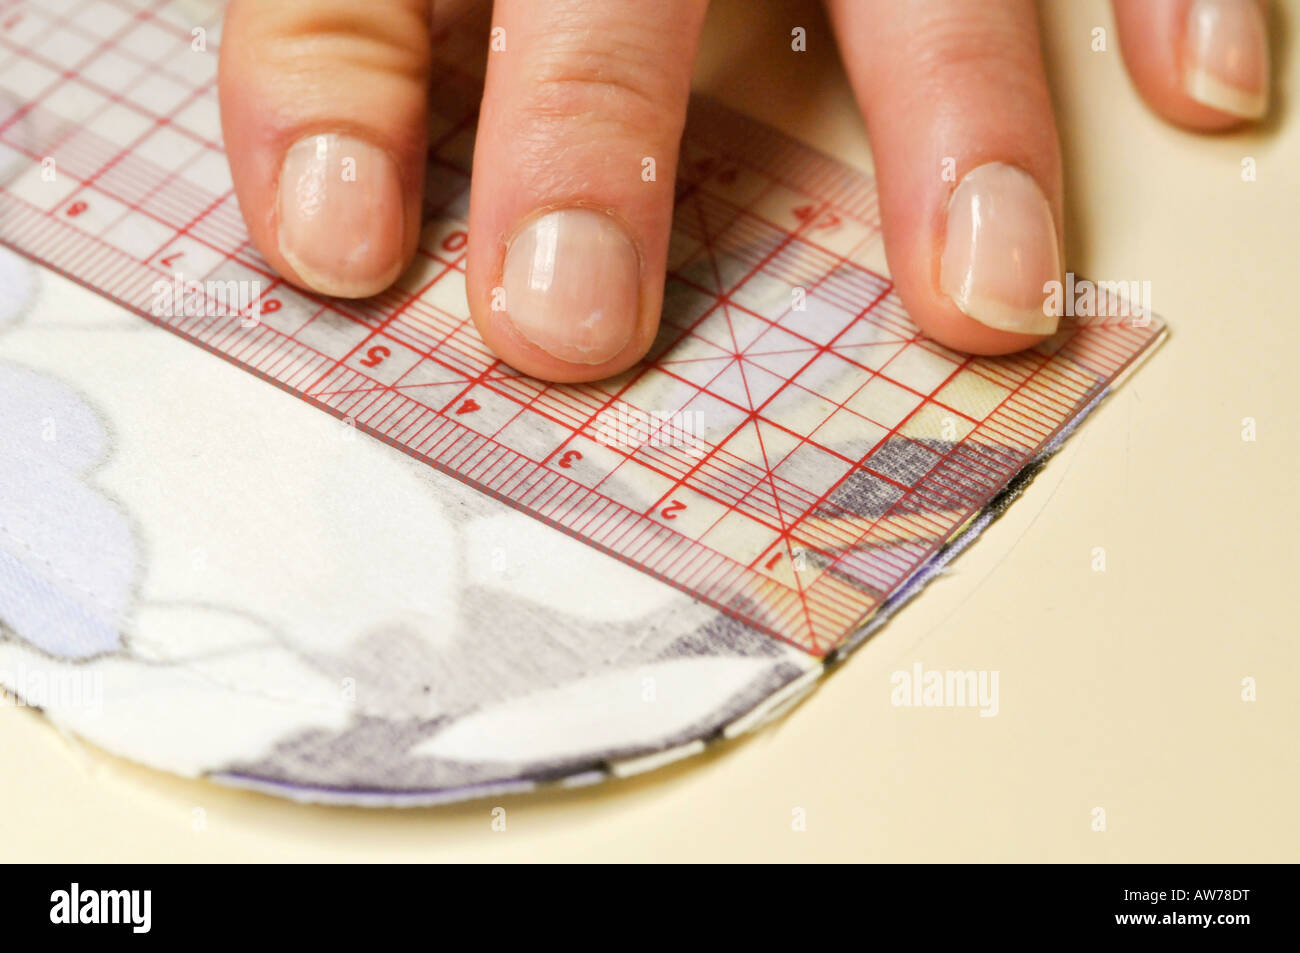 measuring a cloth - Stock Image